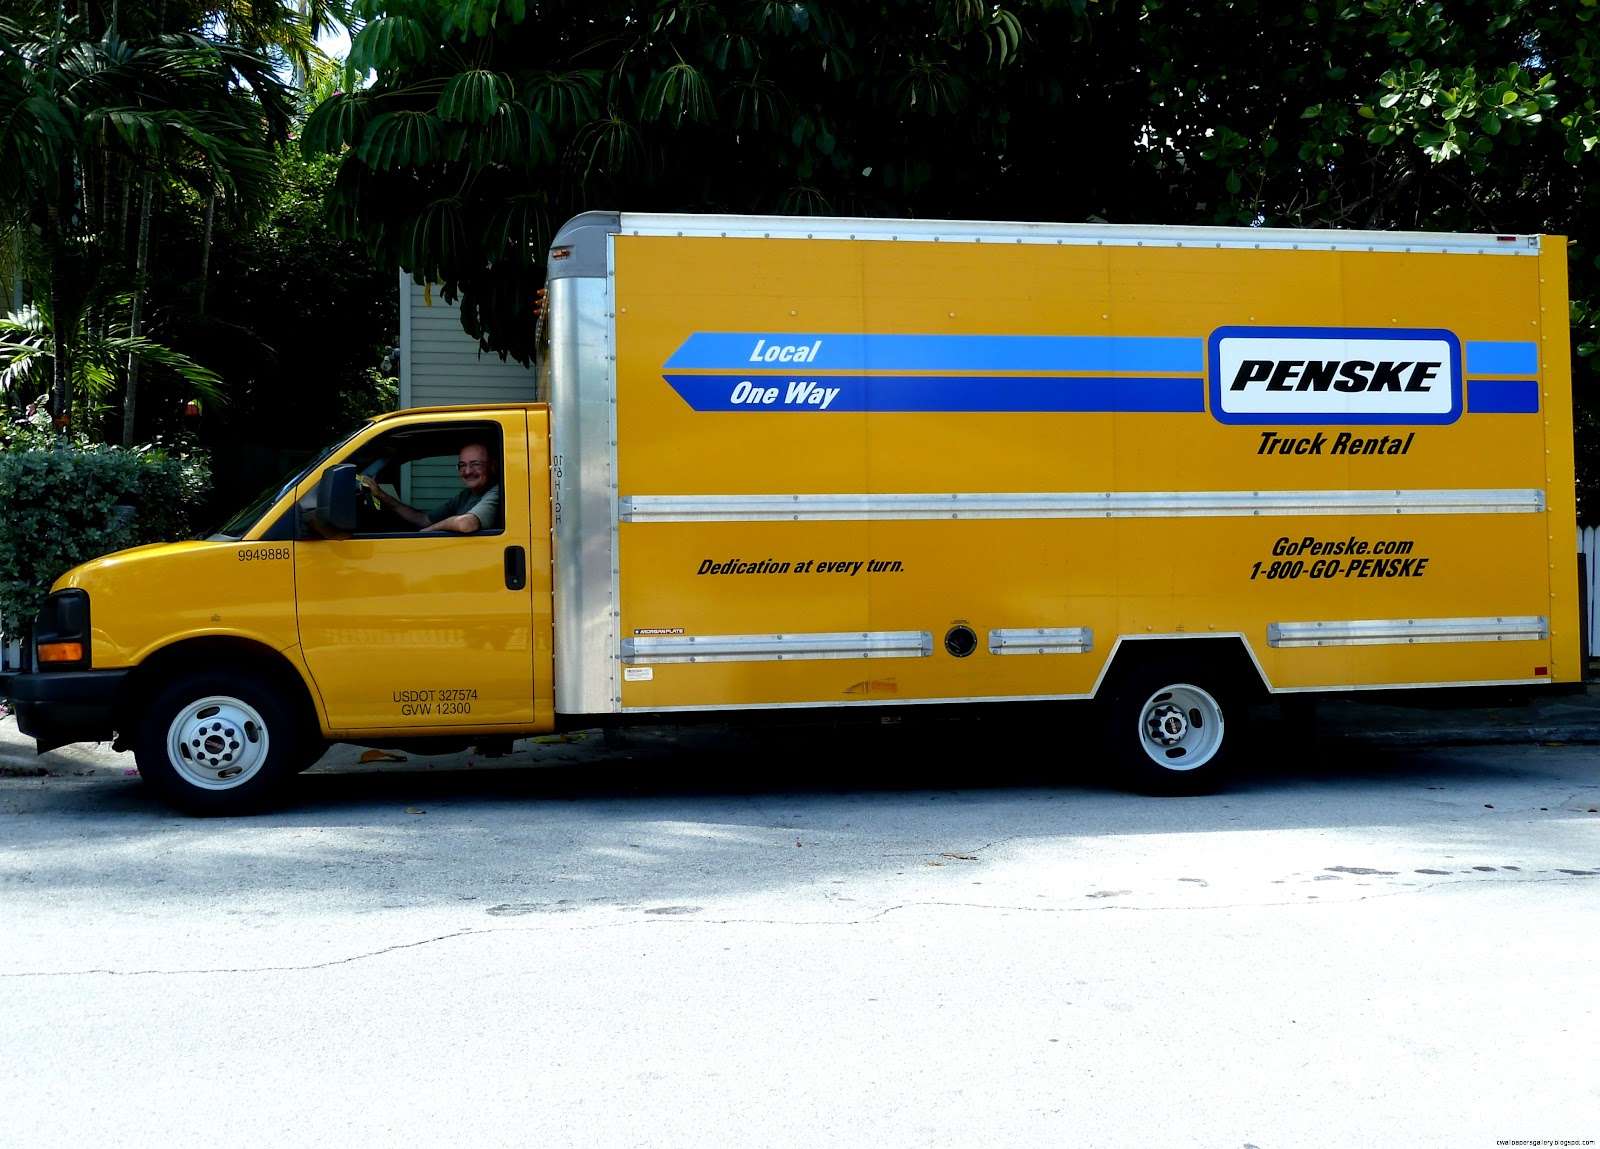 When it comes to long distance movers, residents and businesses need a moving company they can trust to move their items across state lines and country borders without problems.